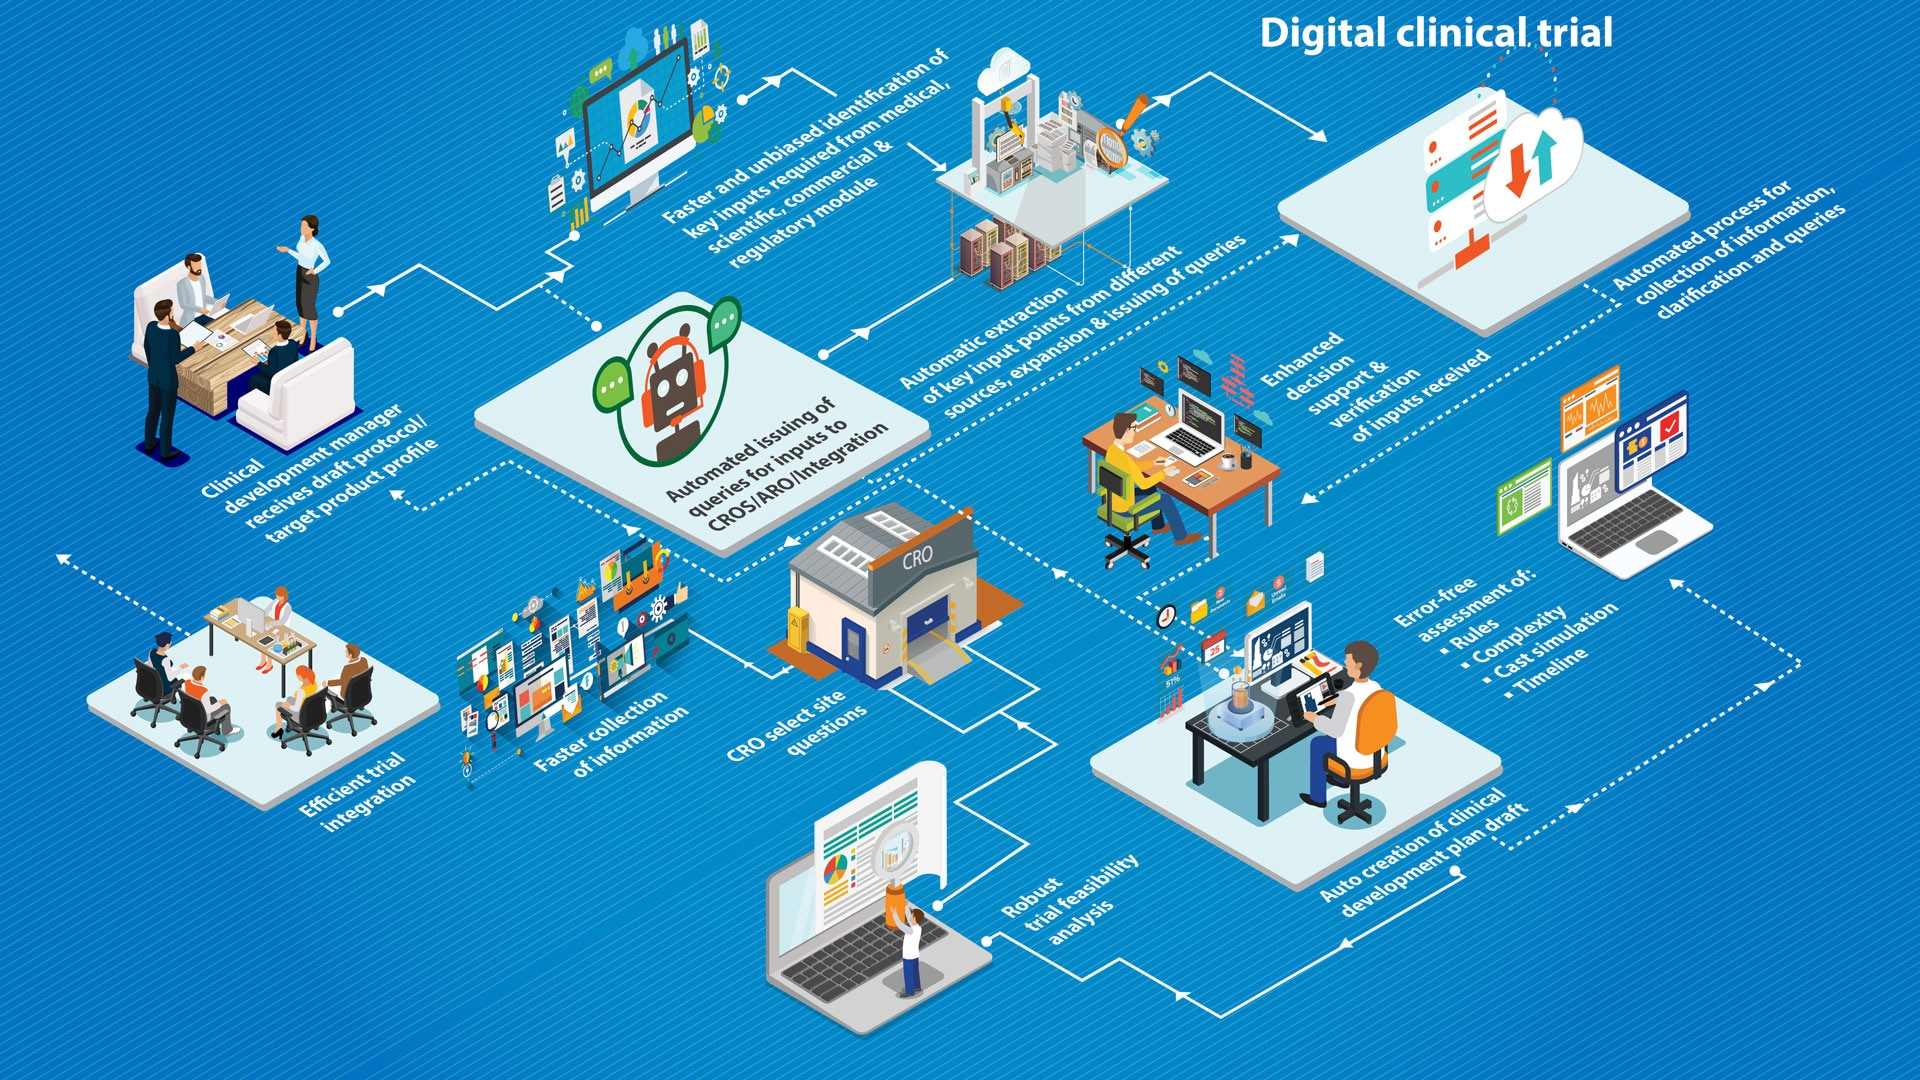 Clinical Trials Made Smarter & Faster